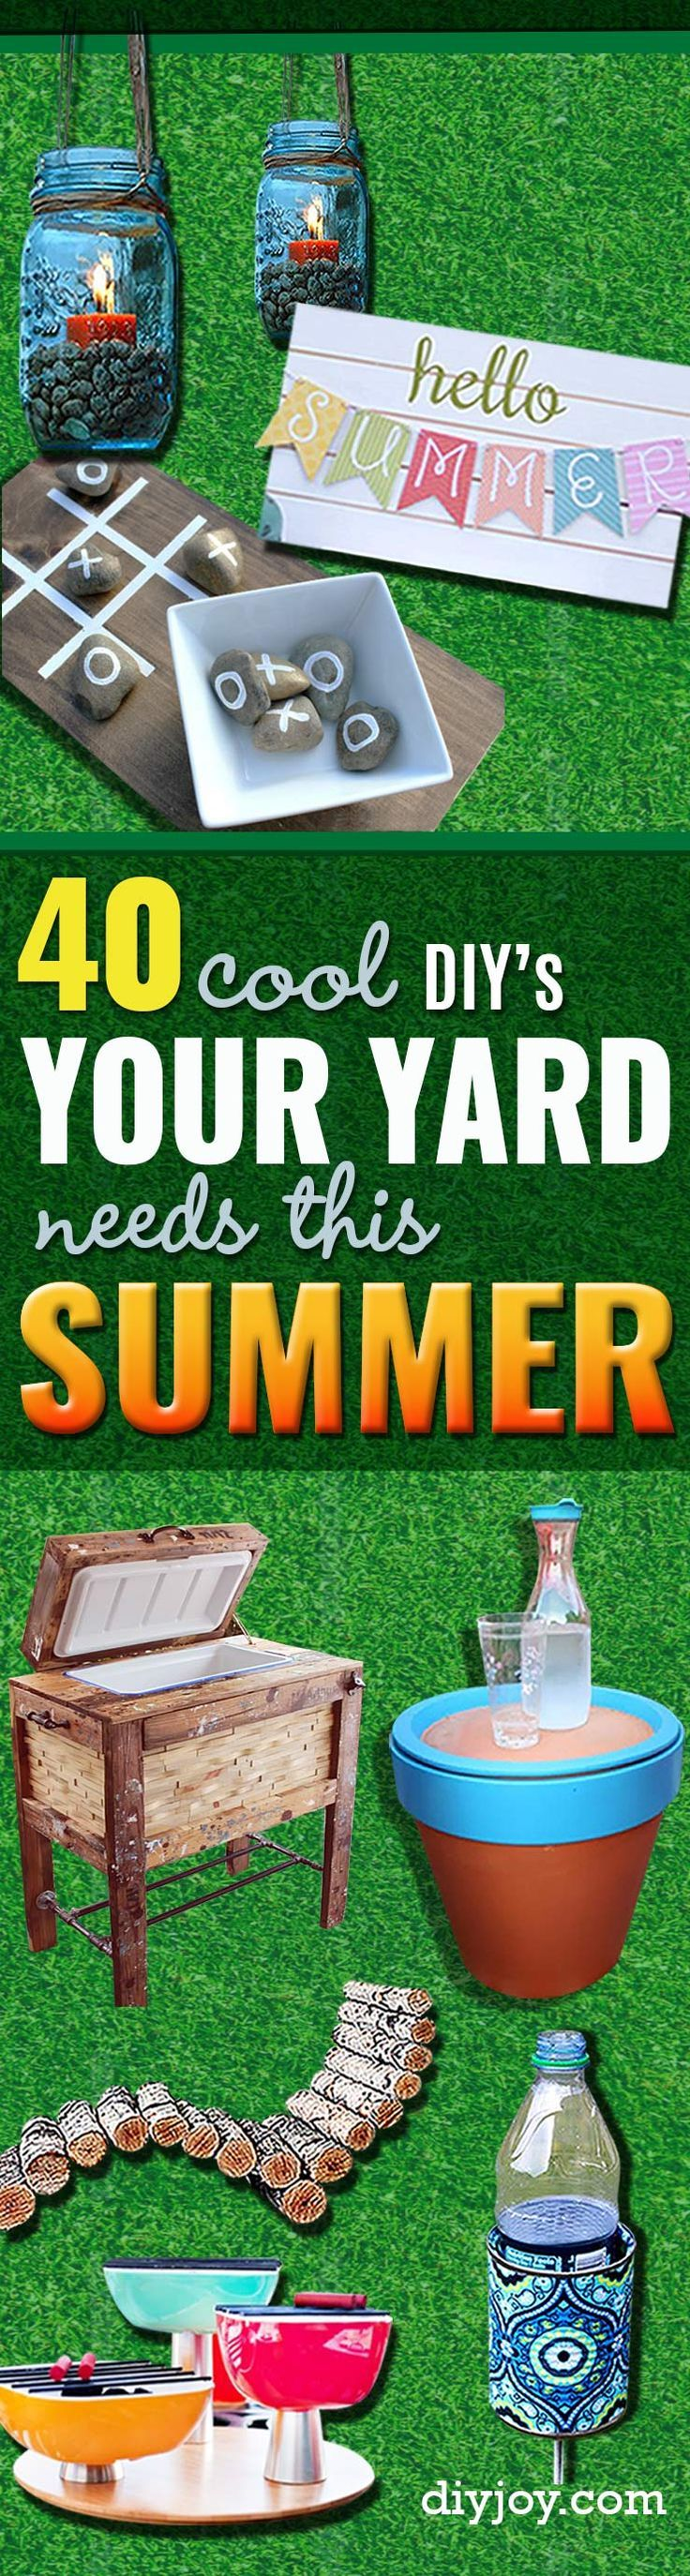 904 best Home Ideas Yard Patio images on Pinterest